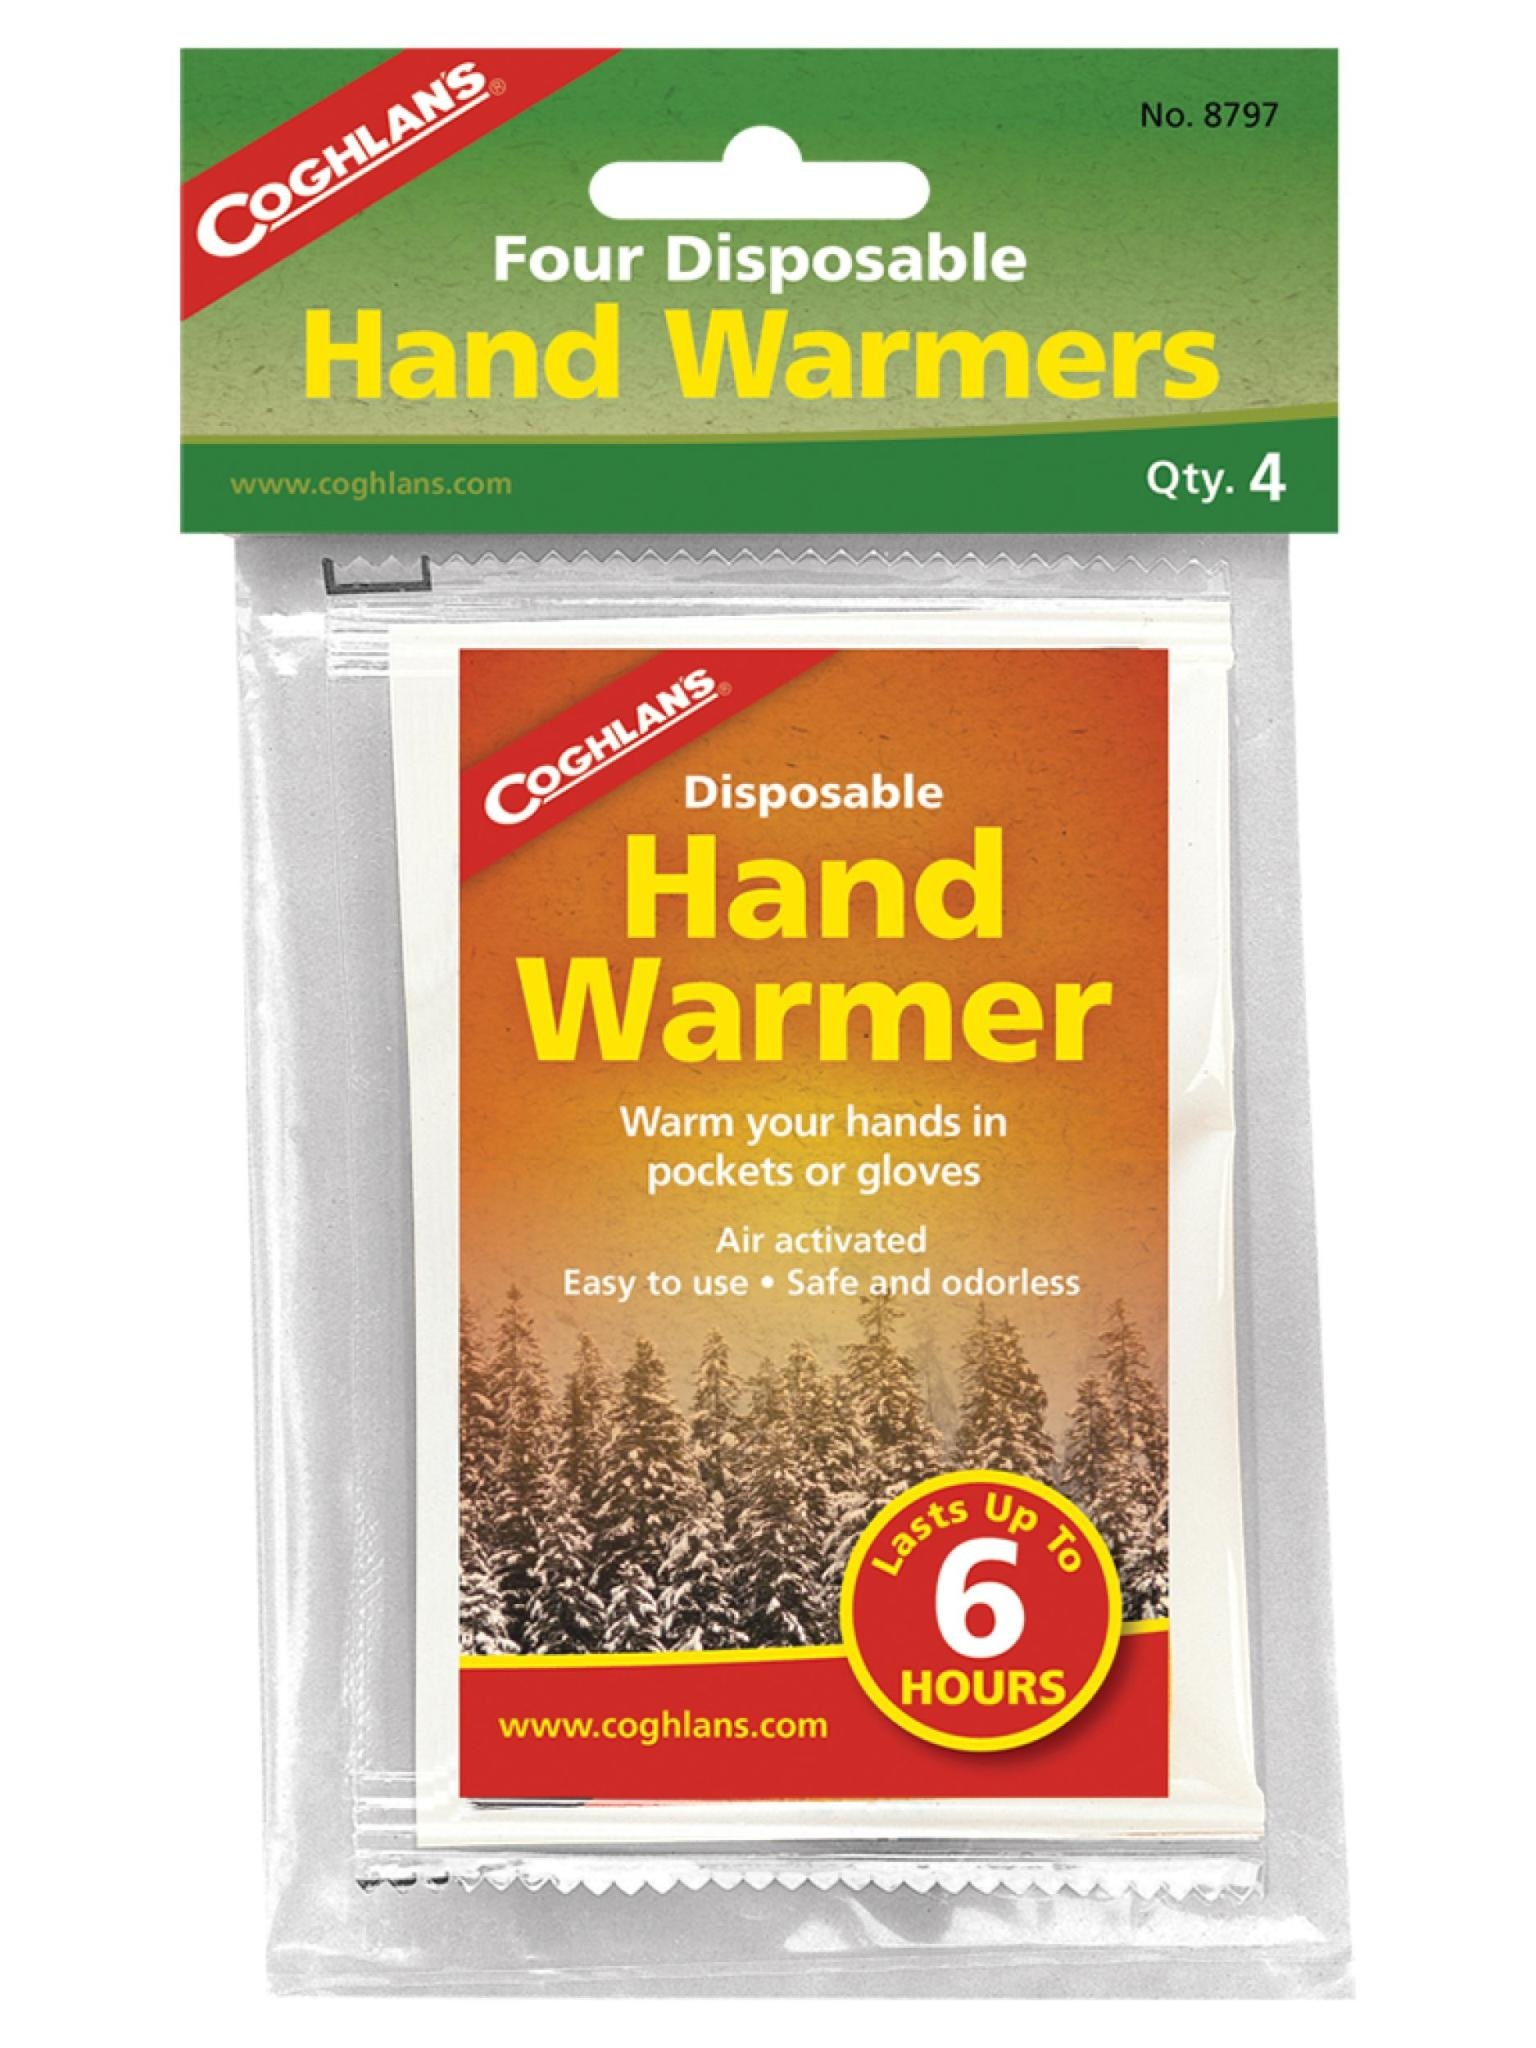 Coghlan's Disposable Hand Warmers - pkg of 4